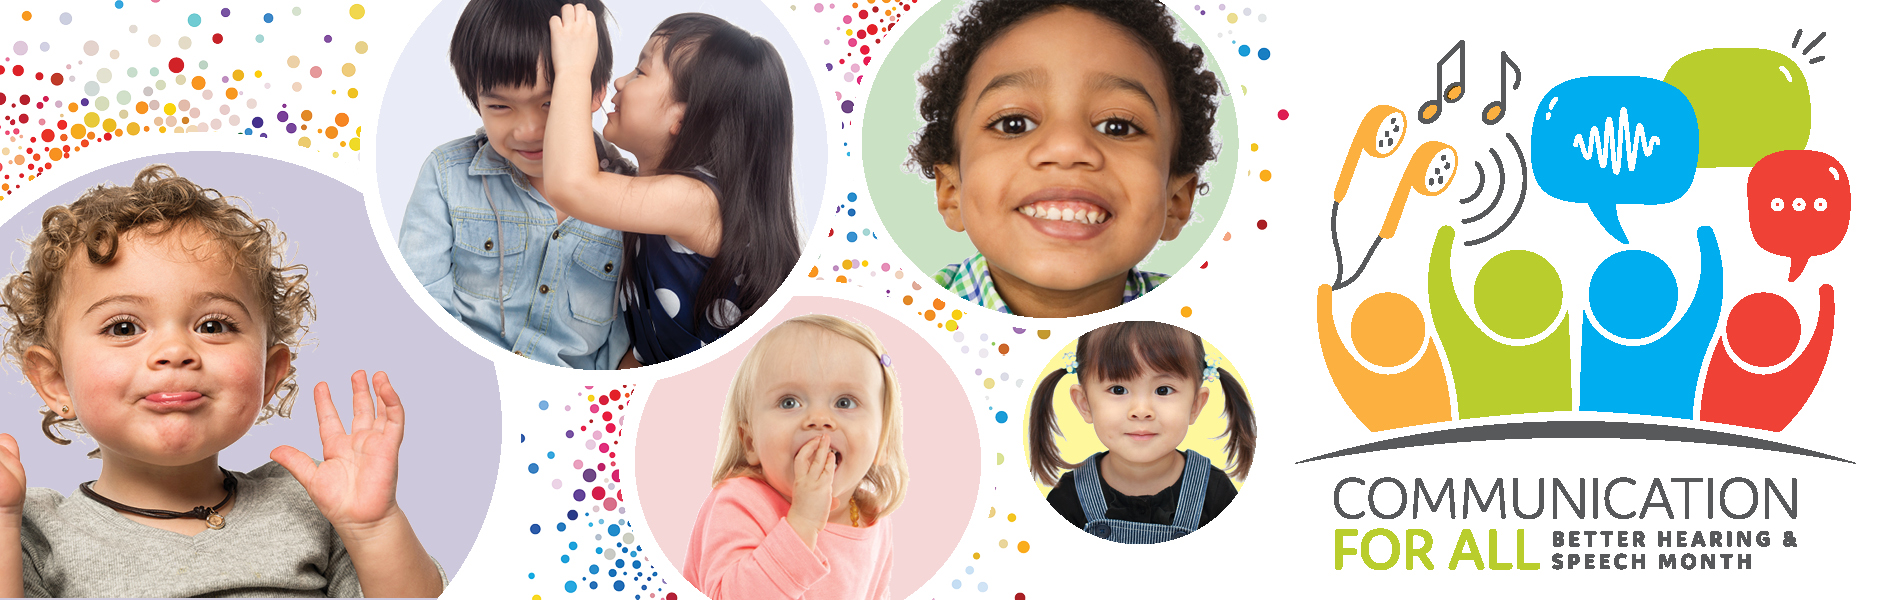 Banner image of multiple different children